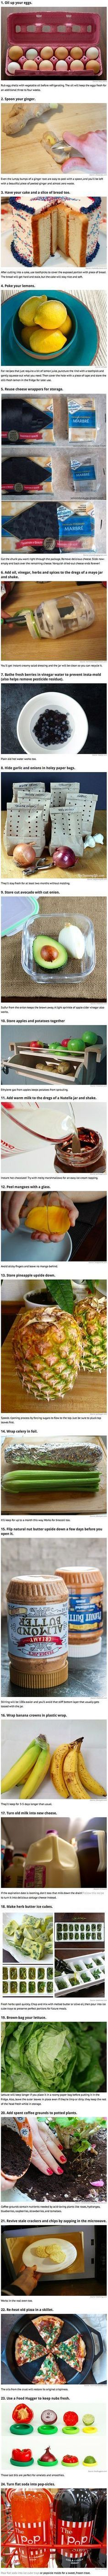 Useful kitchen life hacks and tips that food geeks would love.